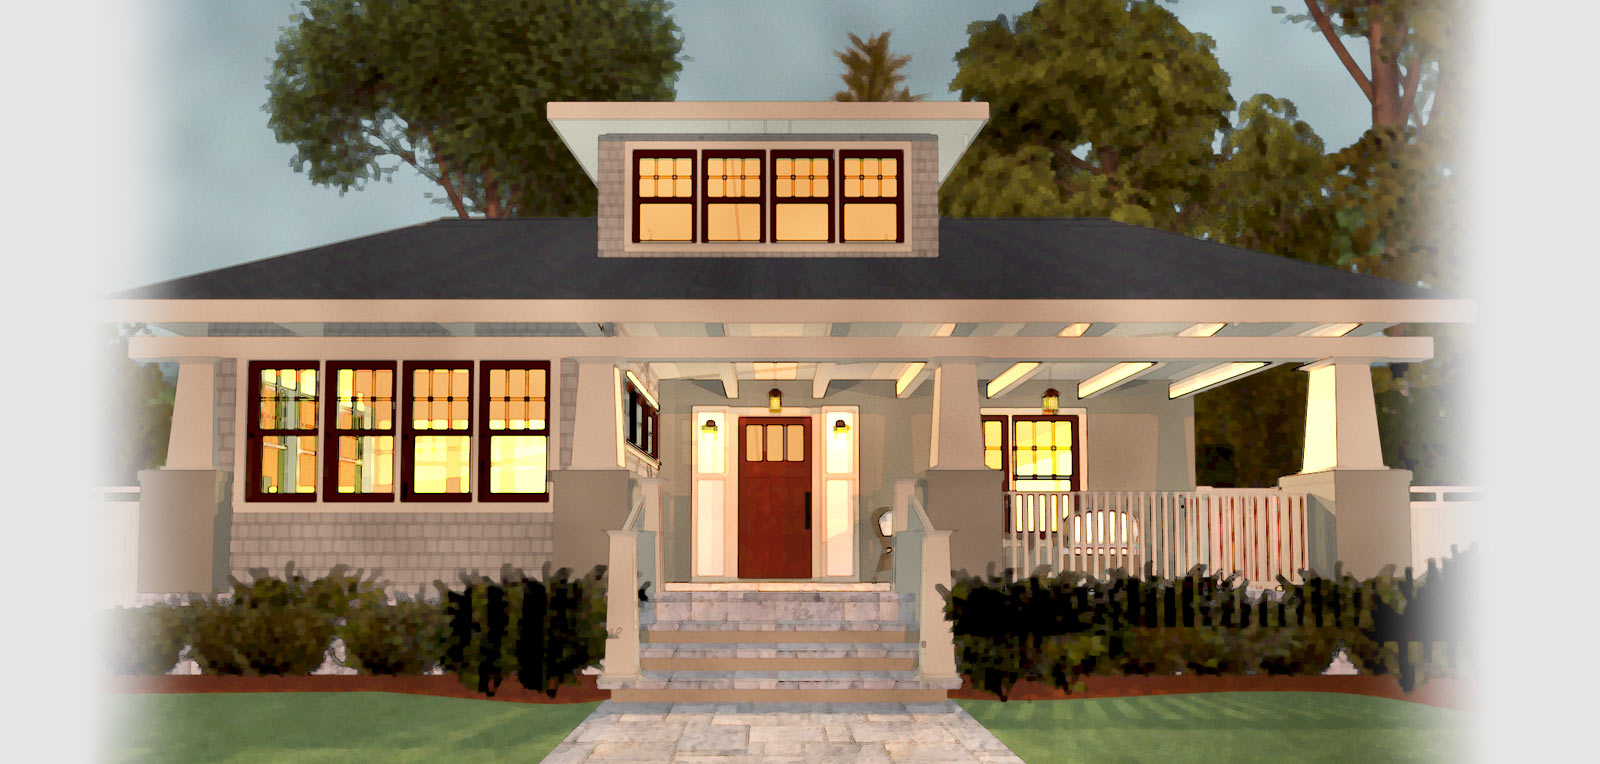 Home designer software for home design remodeling projects New house project